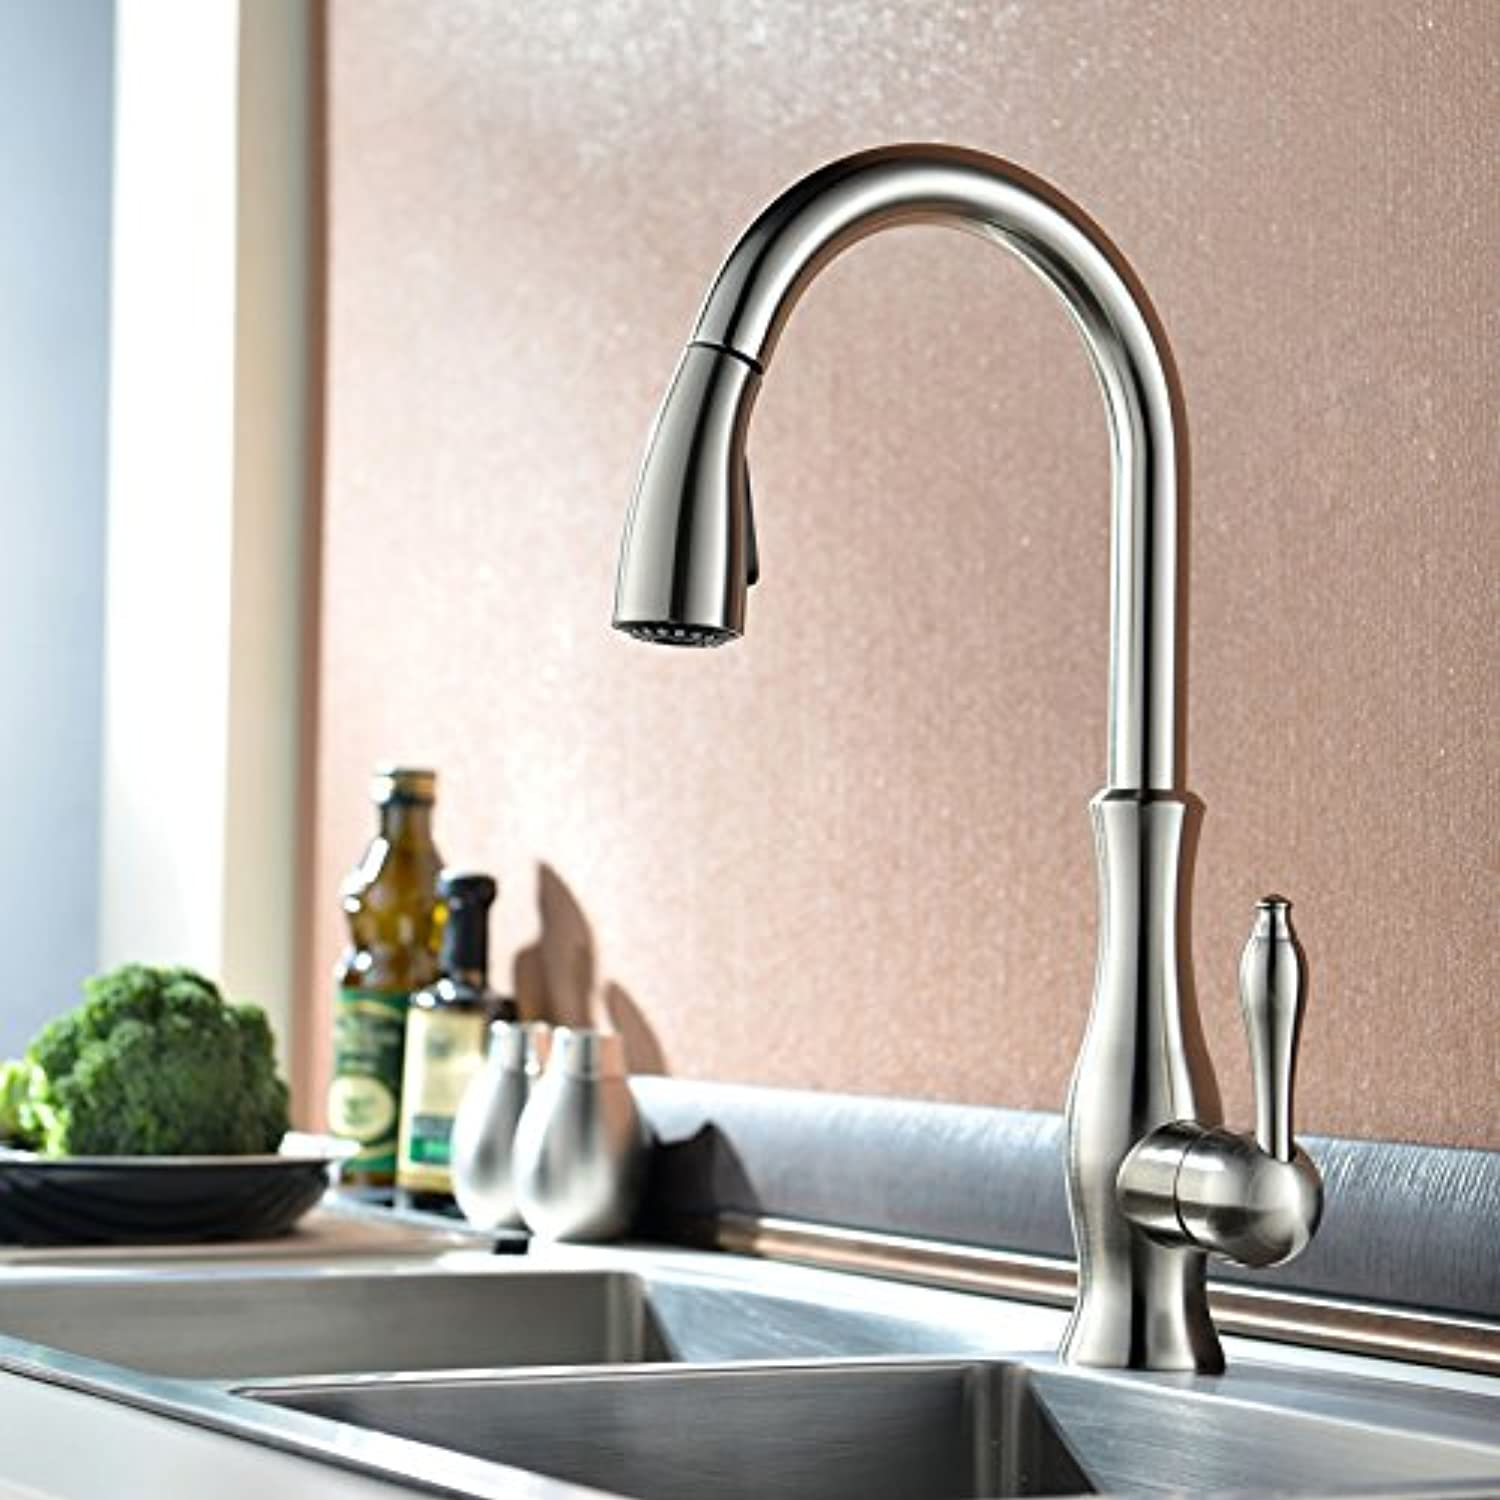 SUHANG All Copper Drawing And Drawing Kitchen Faucet Sink Dish Basin Faucet Hot And Cold redating Kitchen Faucet